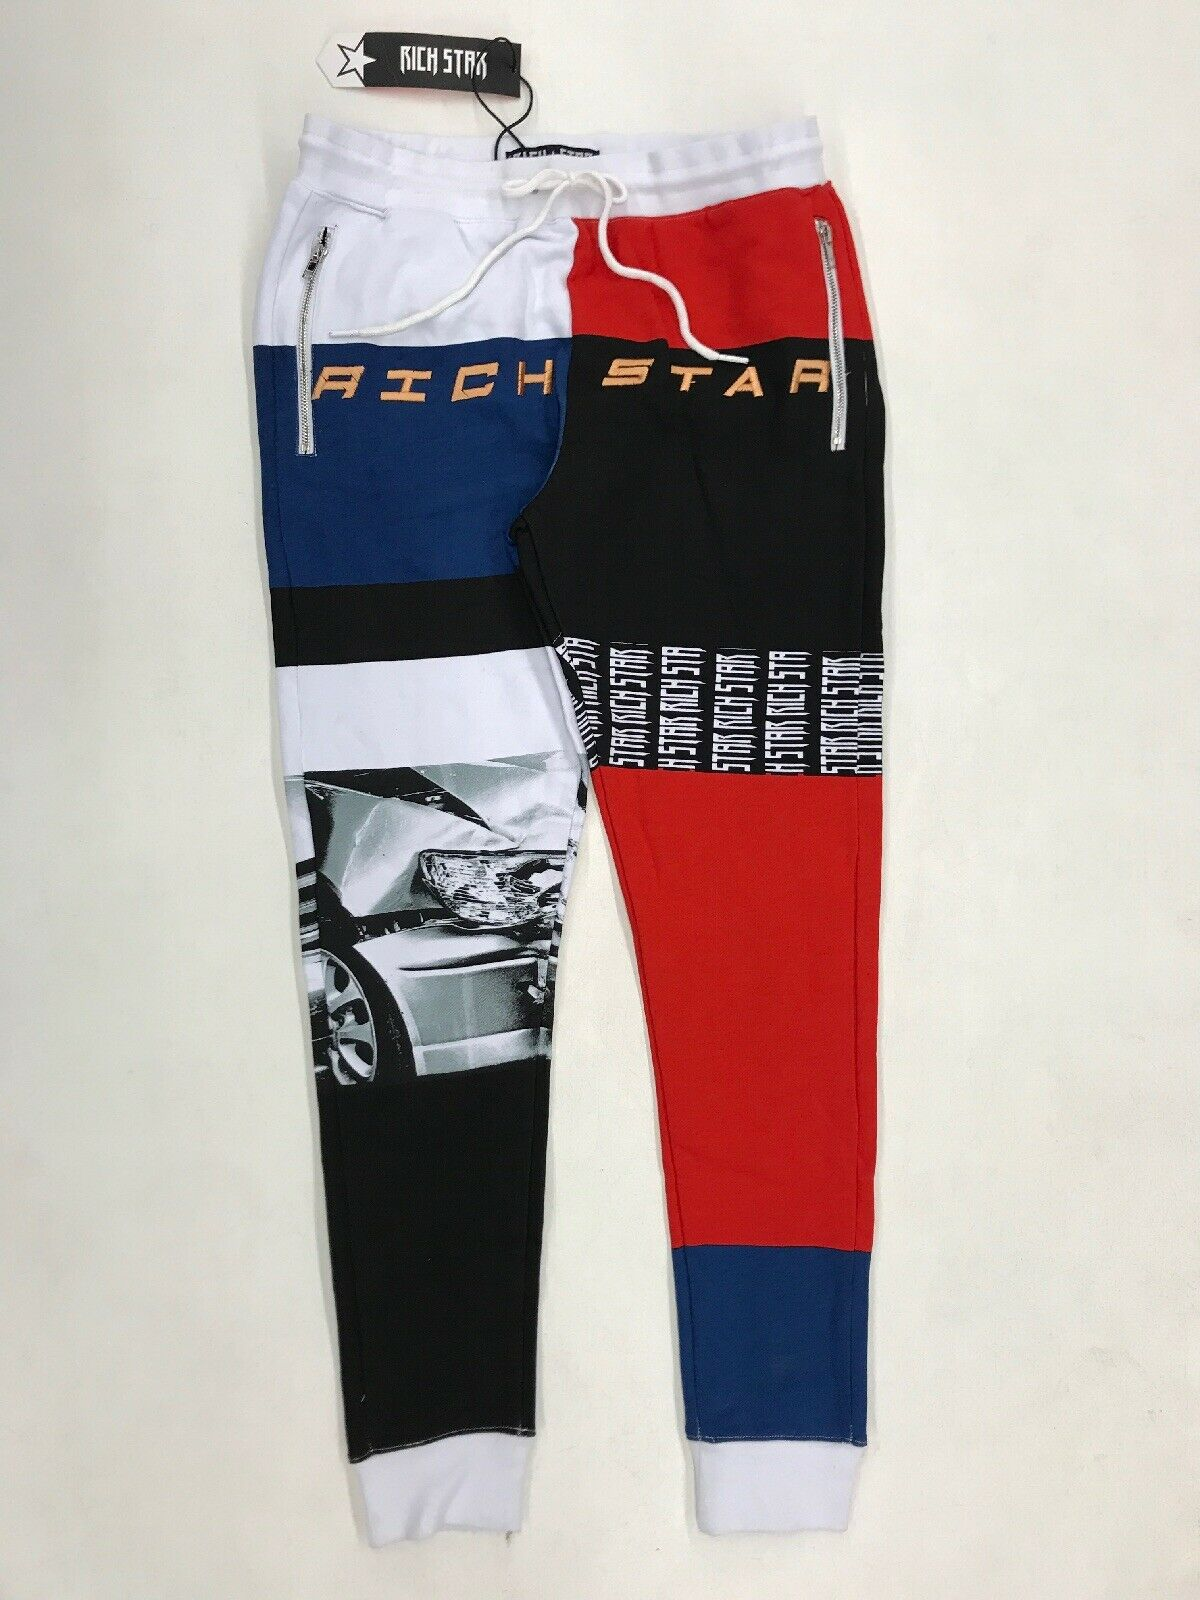 Rich Star Multi Panel Skull Pant Mens Sample Large Nice New Rare Embroidered